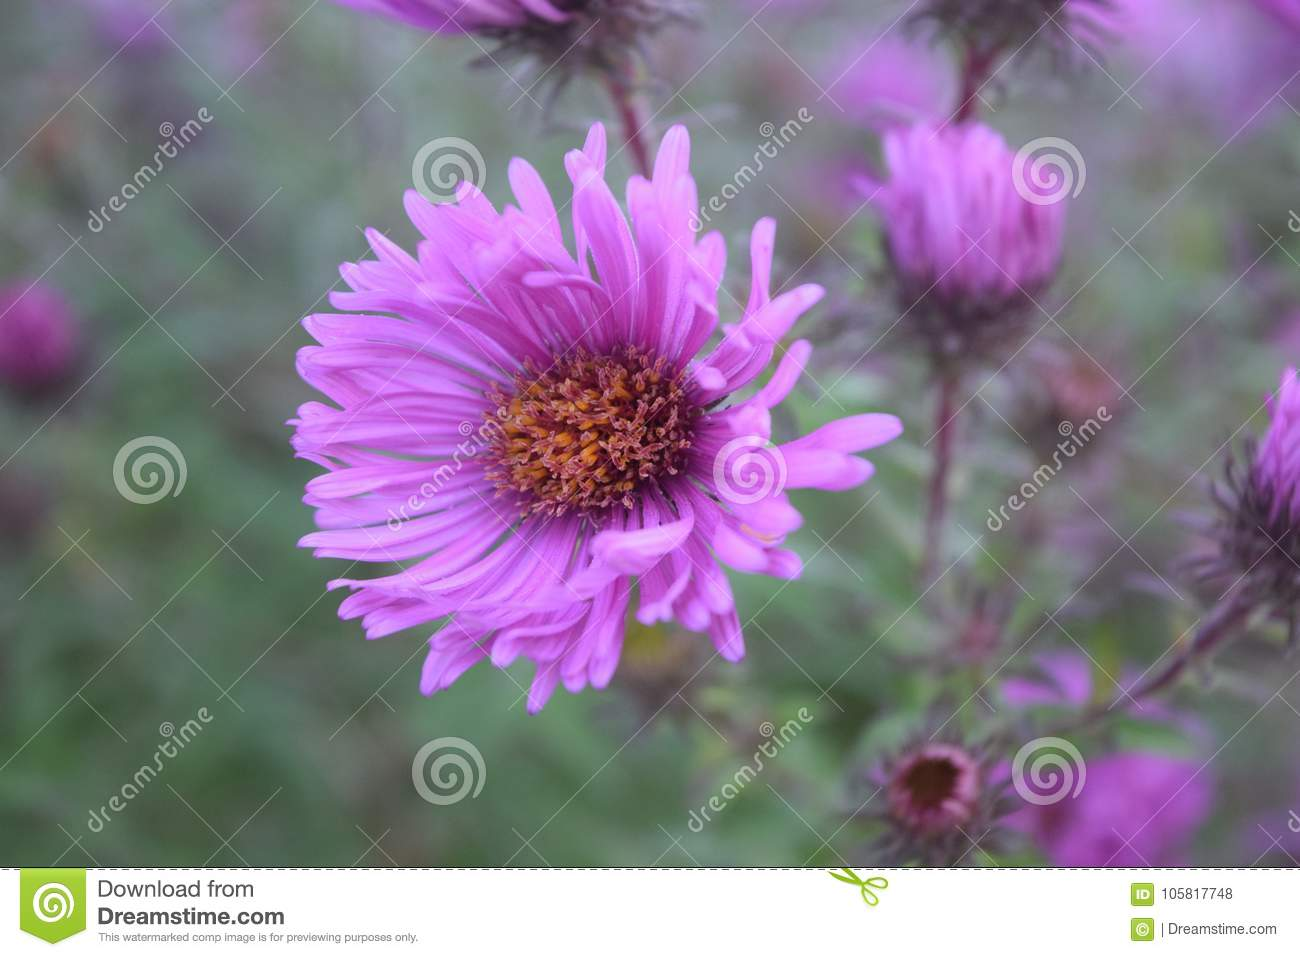 Aster flowers pink asters bloom summer to fall stock photo image download aster flowers pink asters bloom summer to fall stock photo image of park mightylinksfo